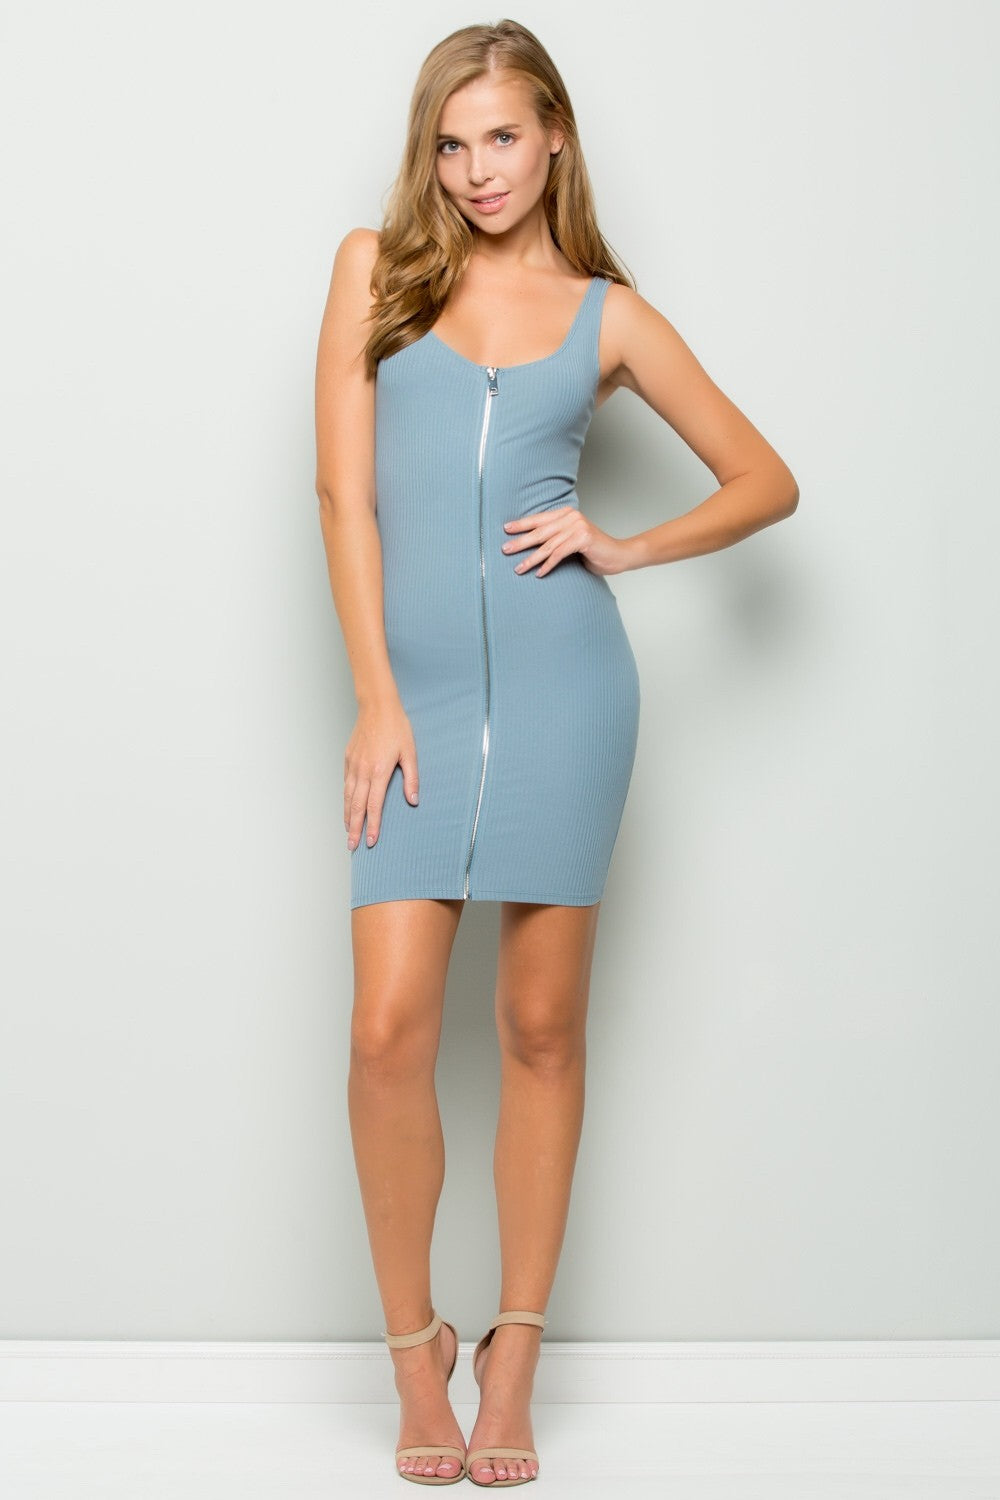 Full-zip Tank Dress (Dusty Blue)